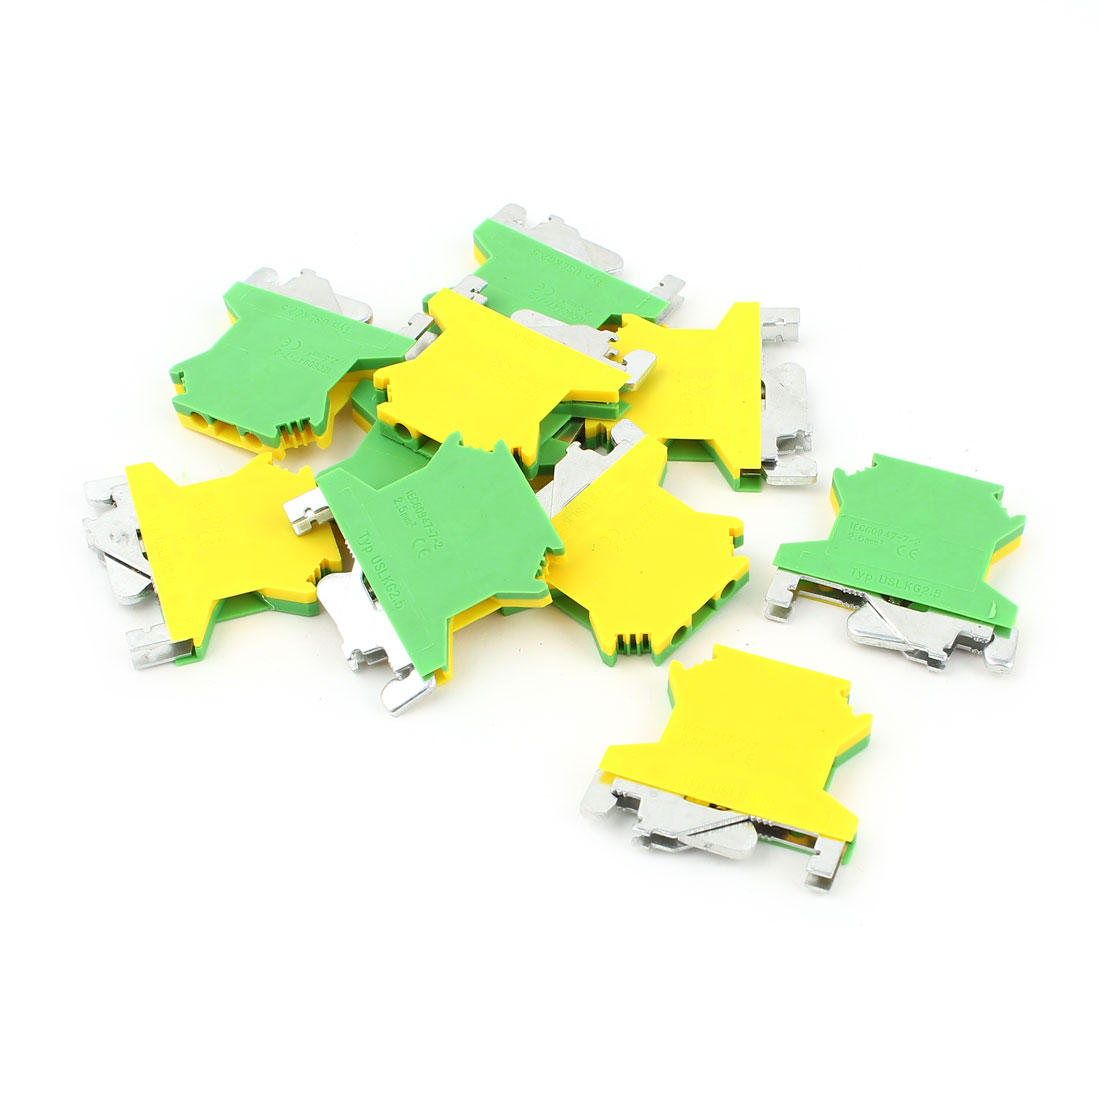 10 Pcs USLKG2.5 0.2-4mm2 Wire Rail Mount Grounding Terminal Block Yellow Green